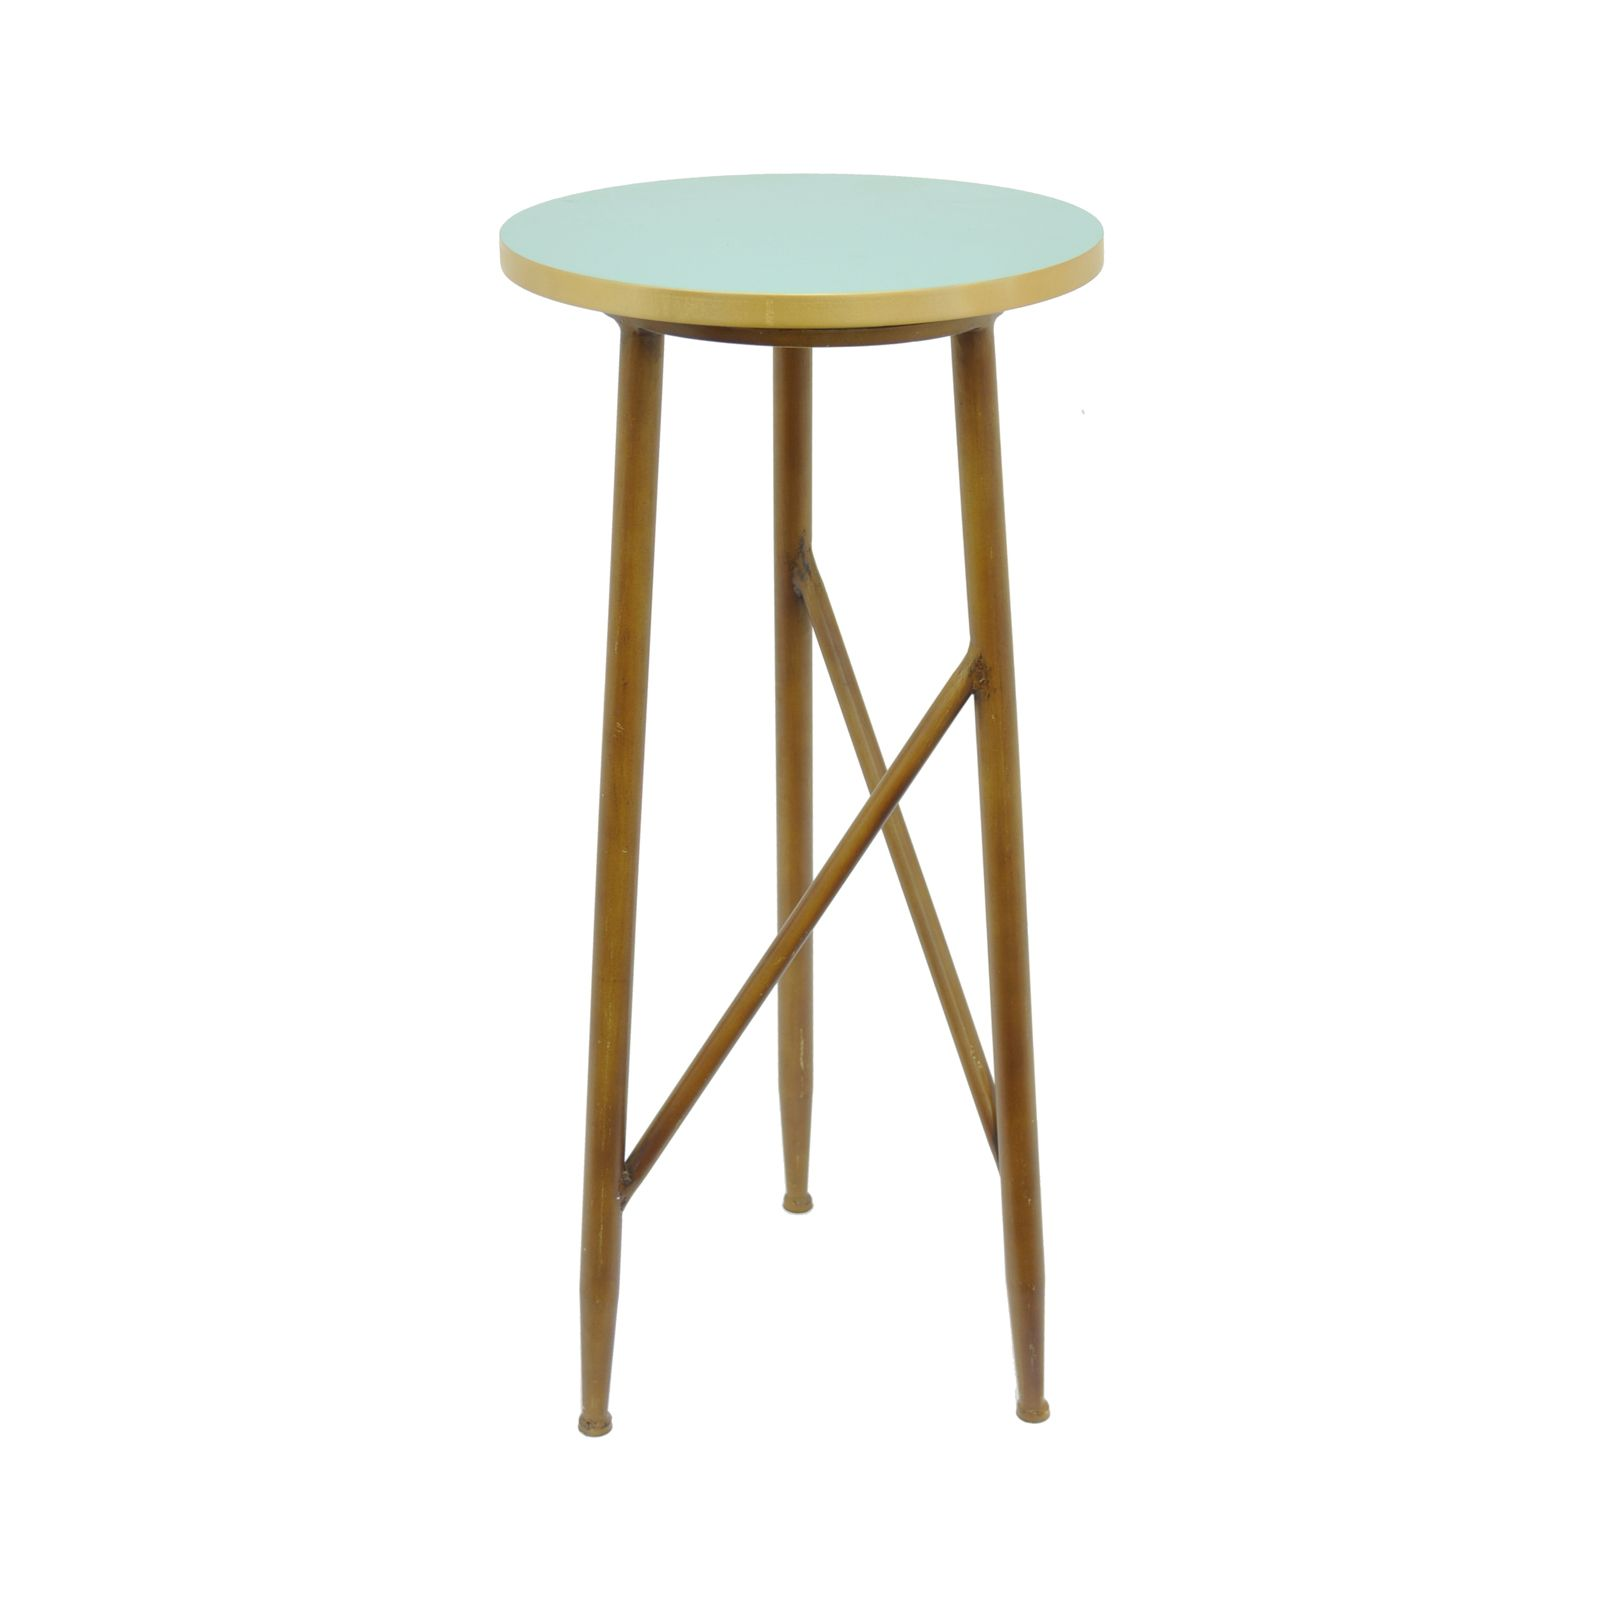 Round Table Tracy Cool Down Your Interiors Accent Table The Round Table Top Is A